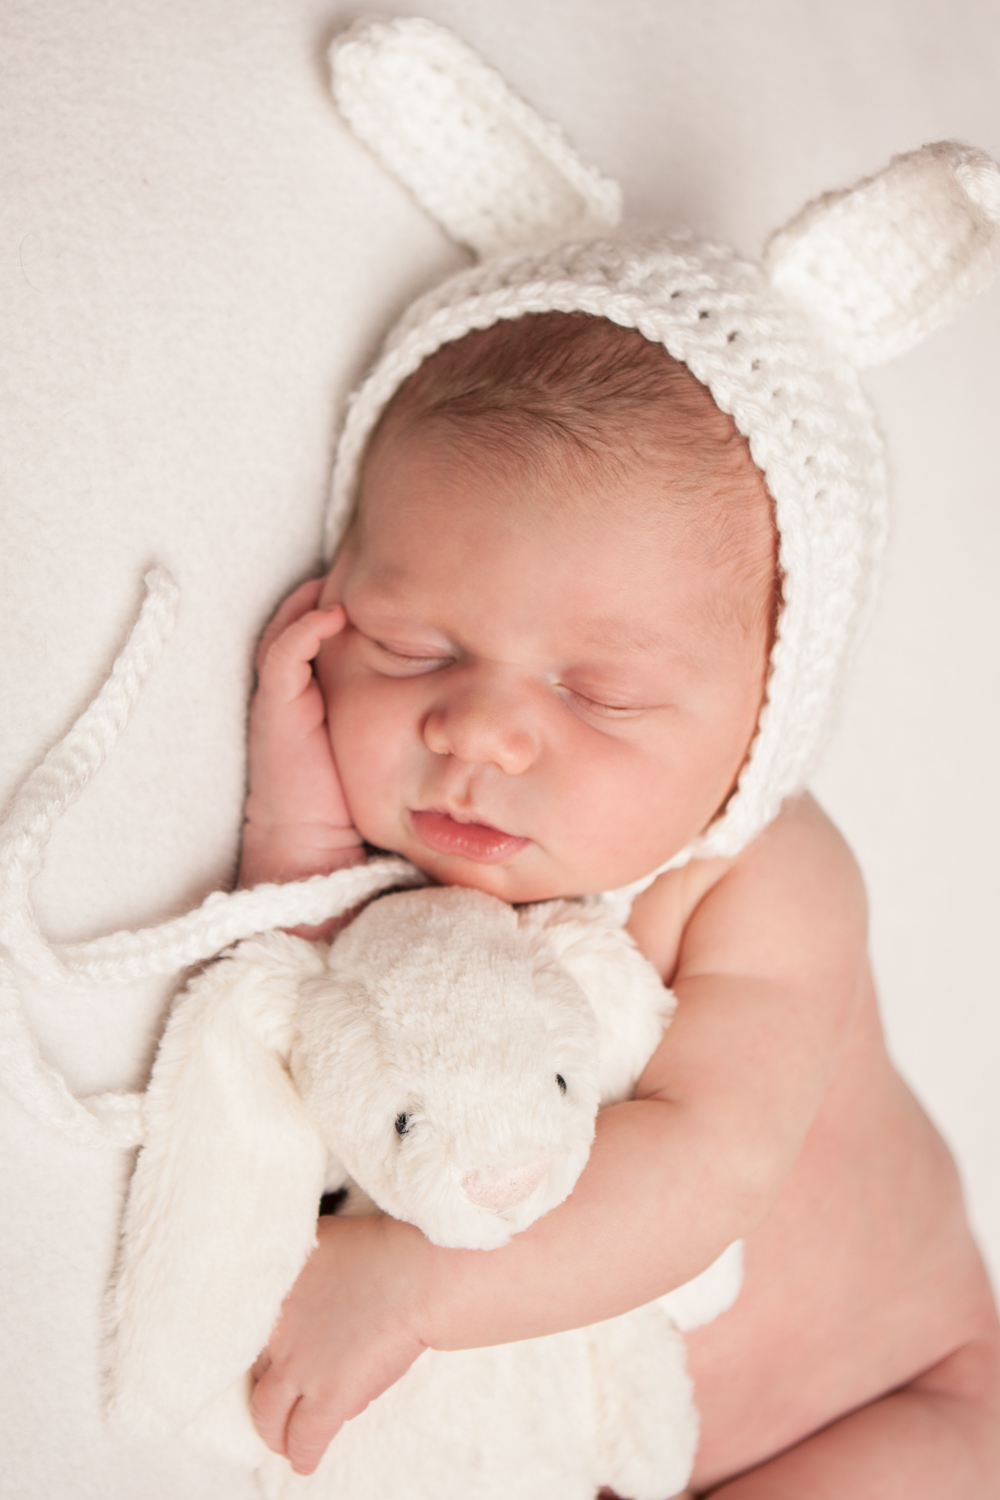 Newborn baby girl in crochet bunny bonnet, holding white bunny jellycat stuffed animal, bean bag pose, on white fabric backdrop, Westchester County, New York Newborn Photographer, Amanda Noelle Photography.